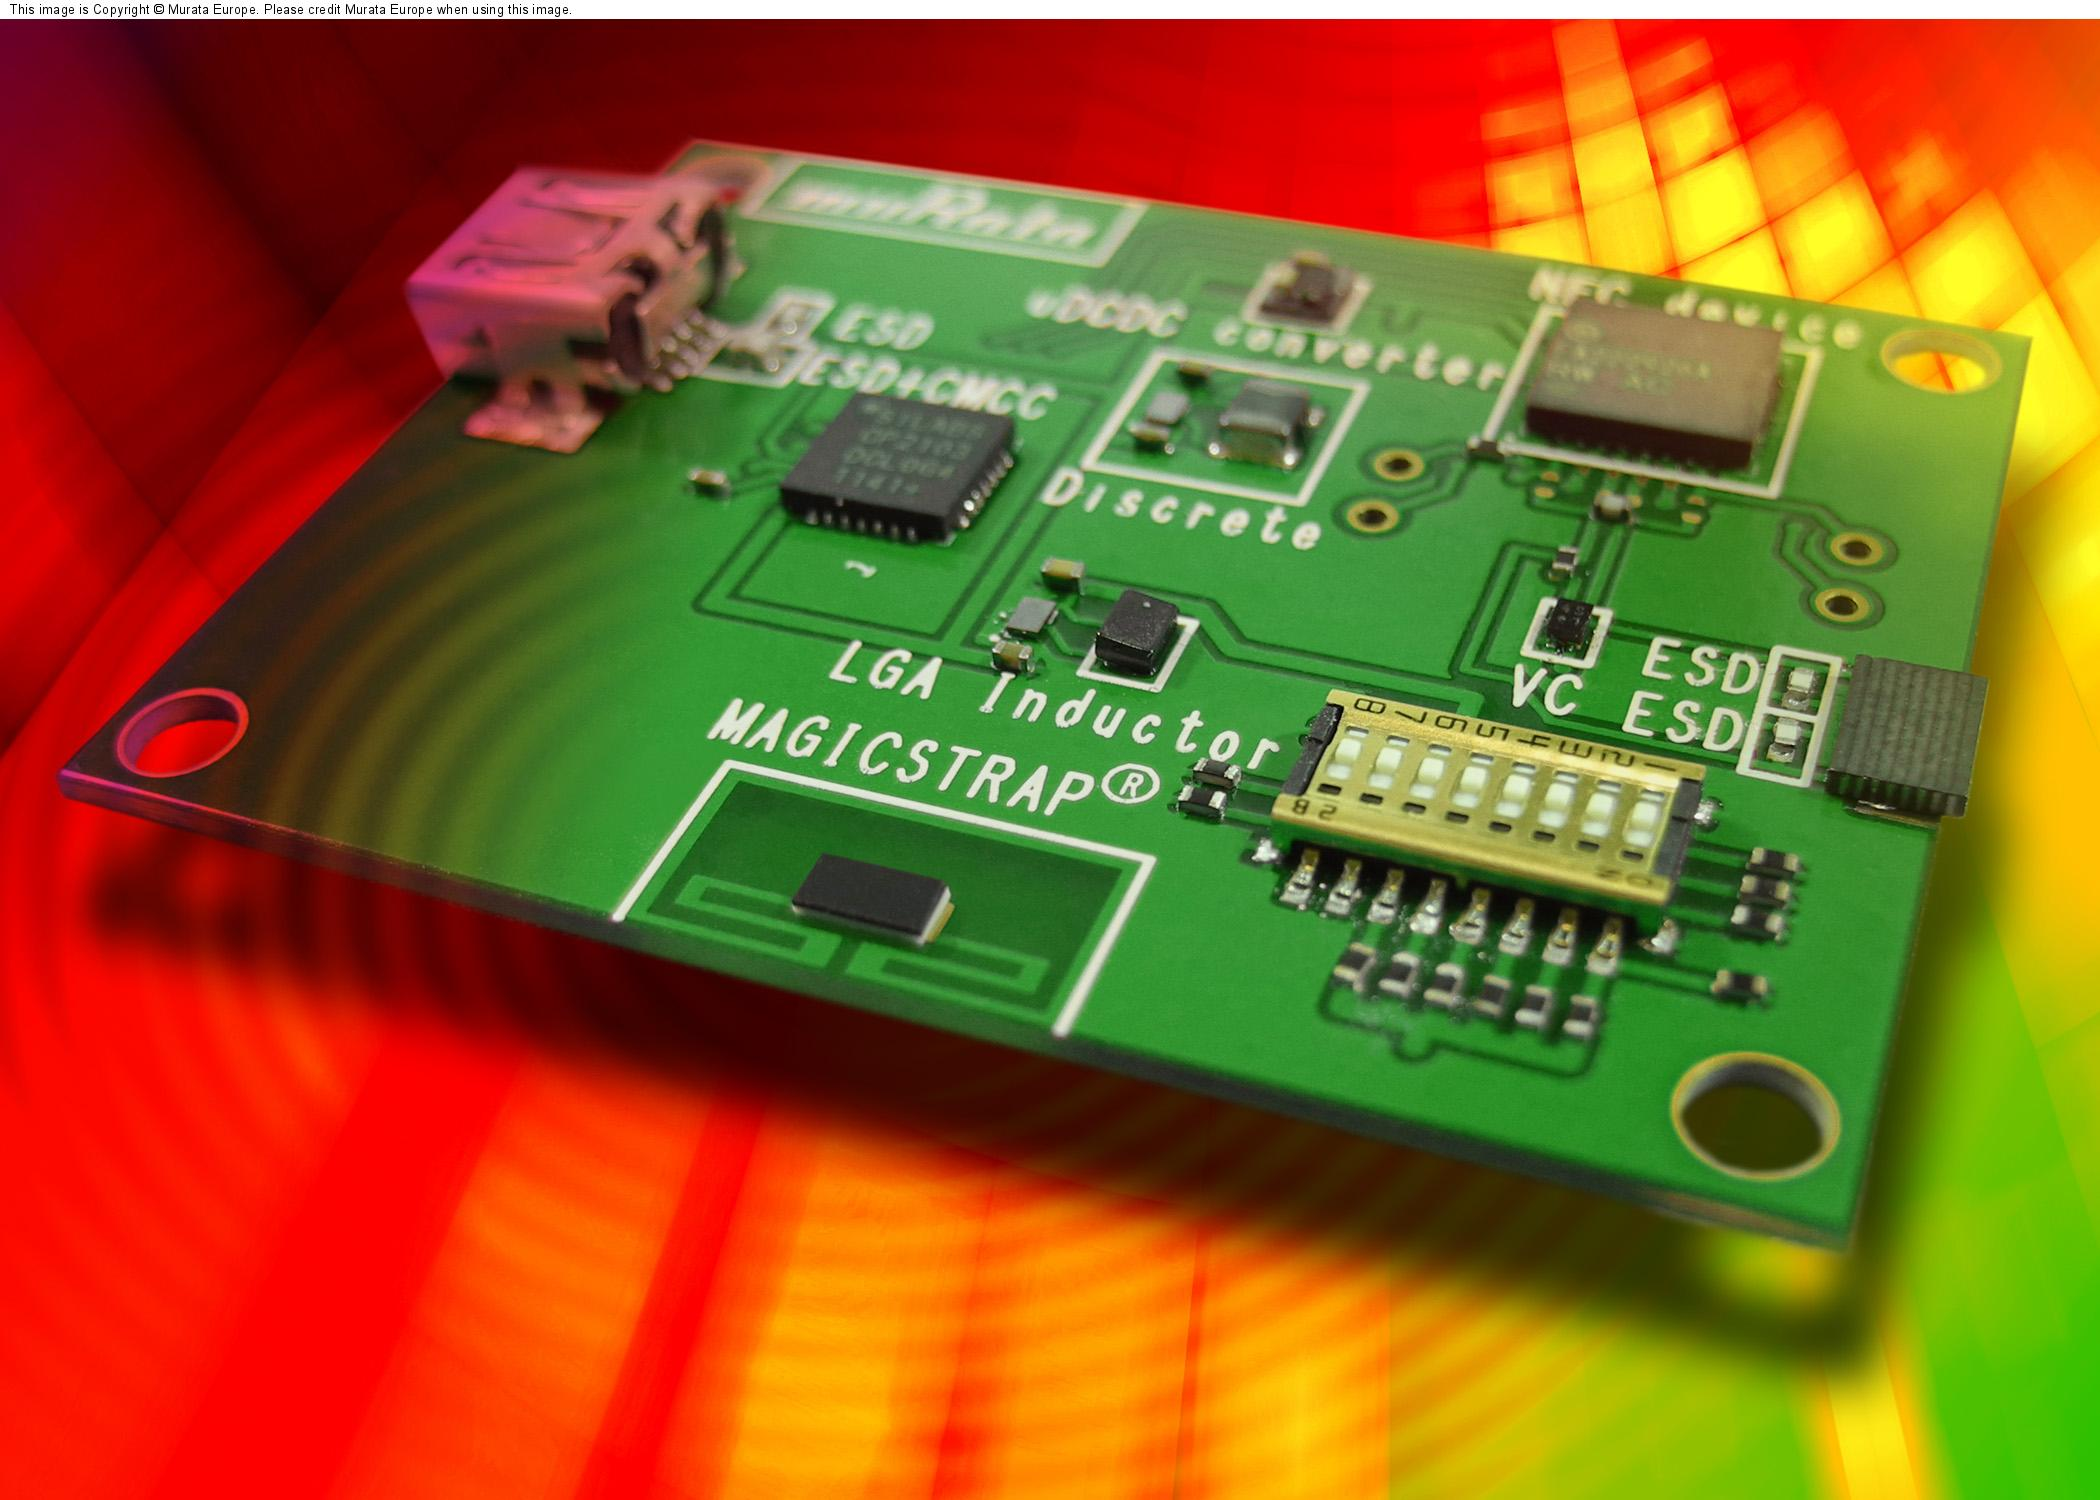 Image from http://www.murata.eu/news/en/pr/pcb-mounted-rfid-tag-solution-from-MUR247.